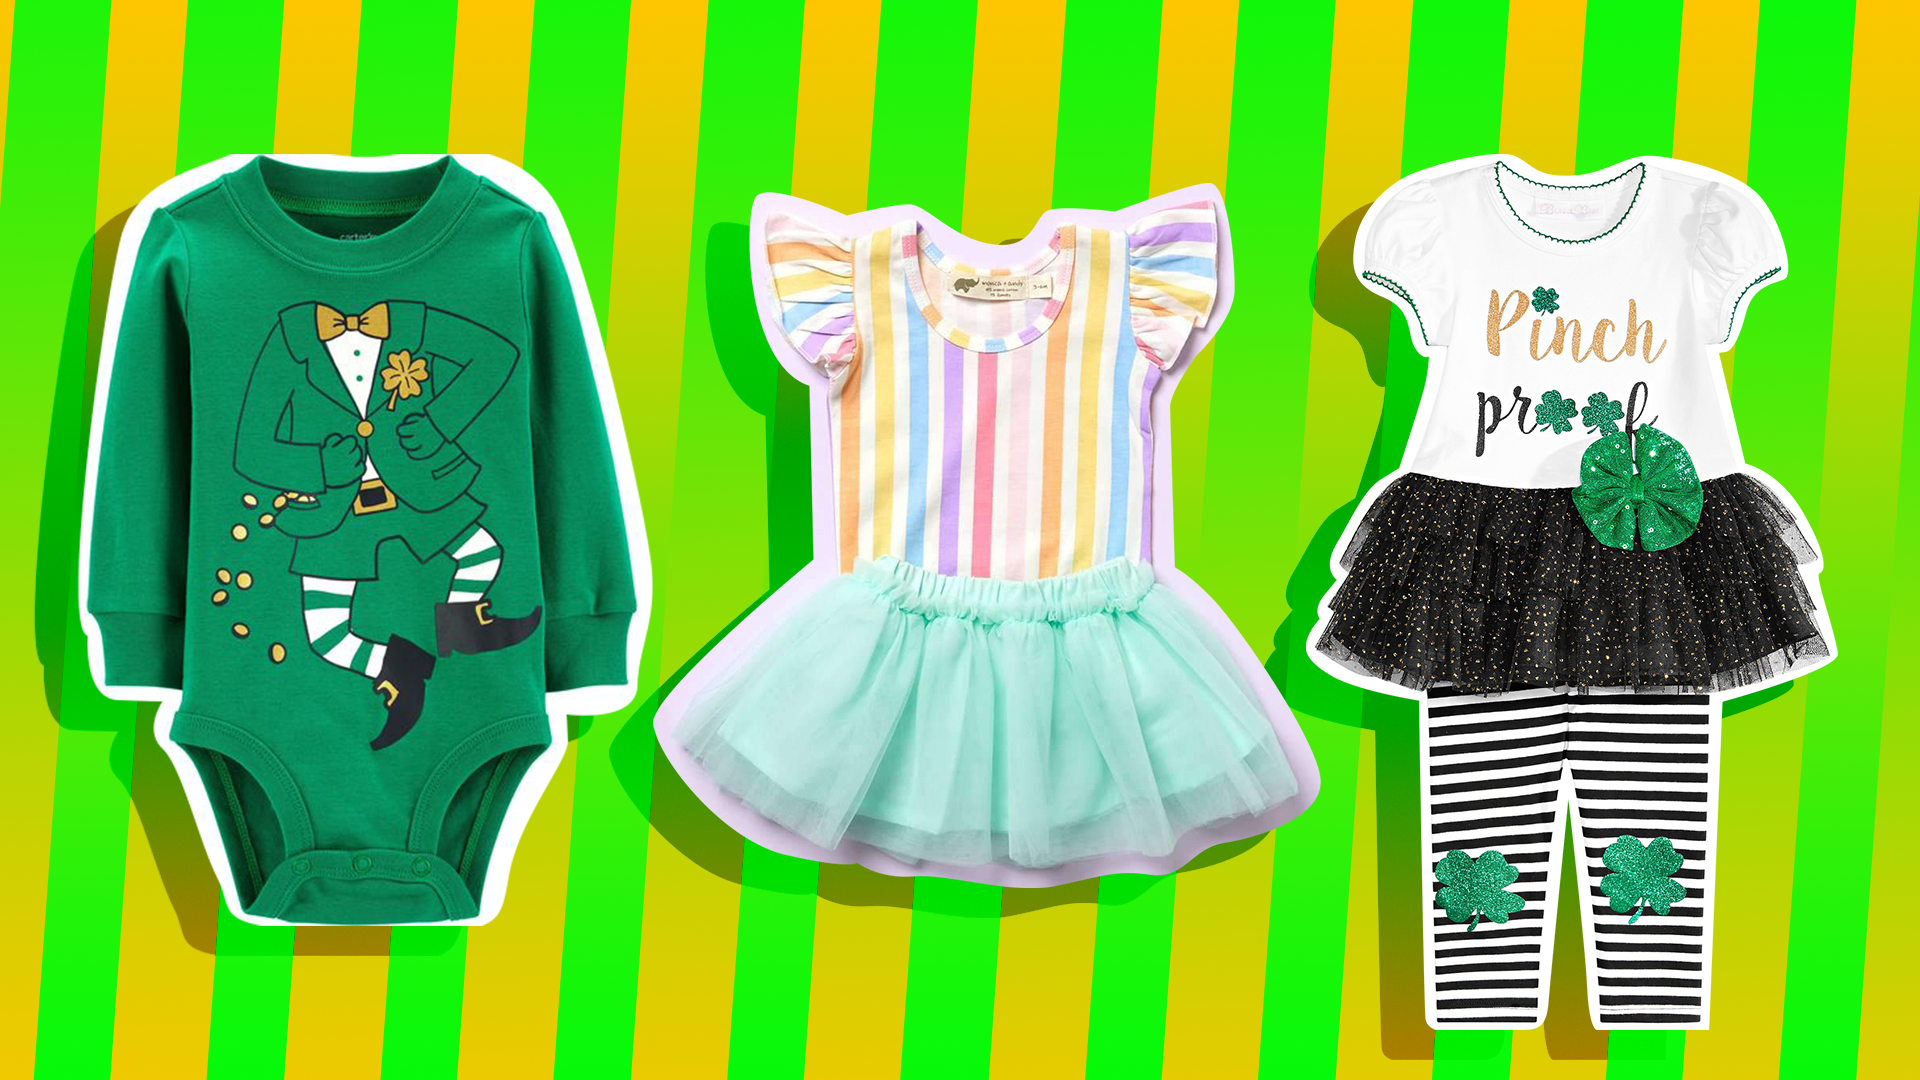 ec8e71c7d Cutest St. Patrick's Day Outfits for Kids: Shamrock T-Shirts & More ...